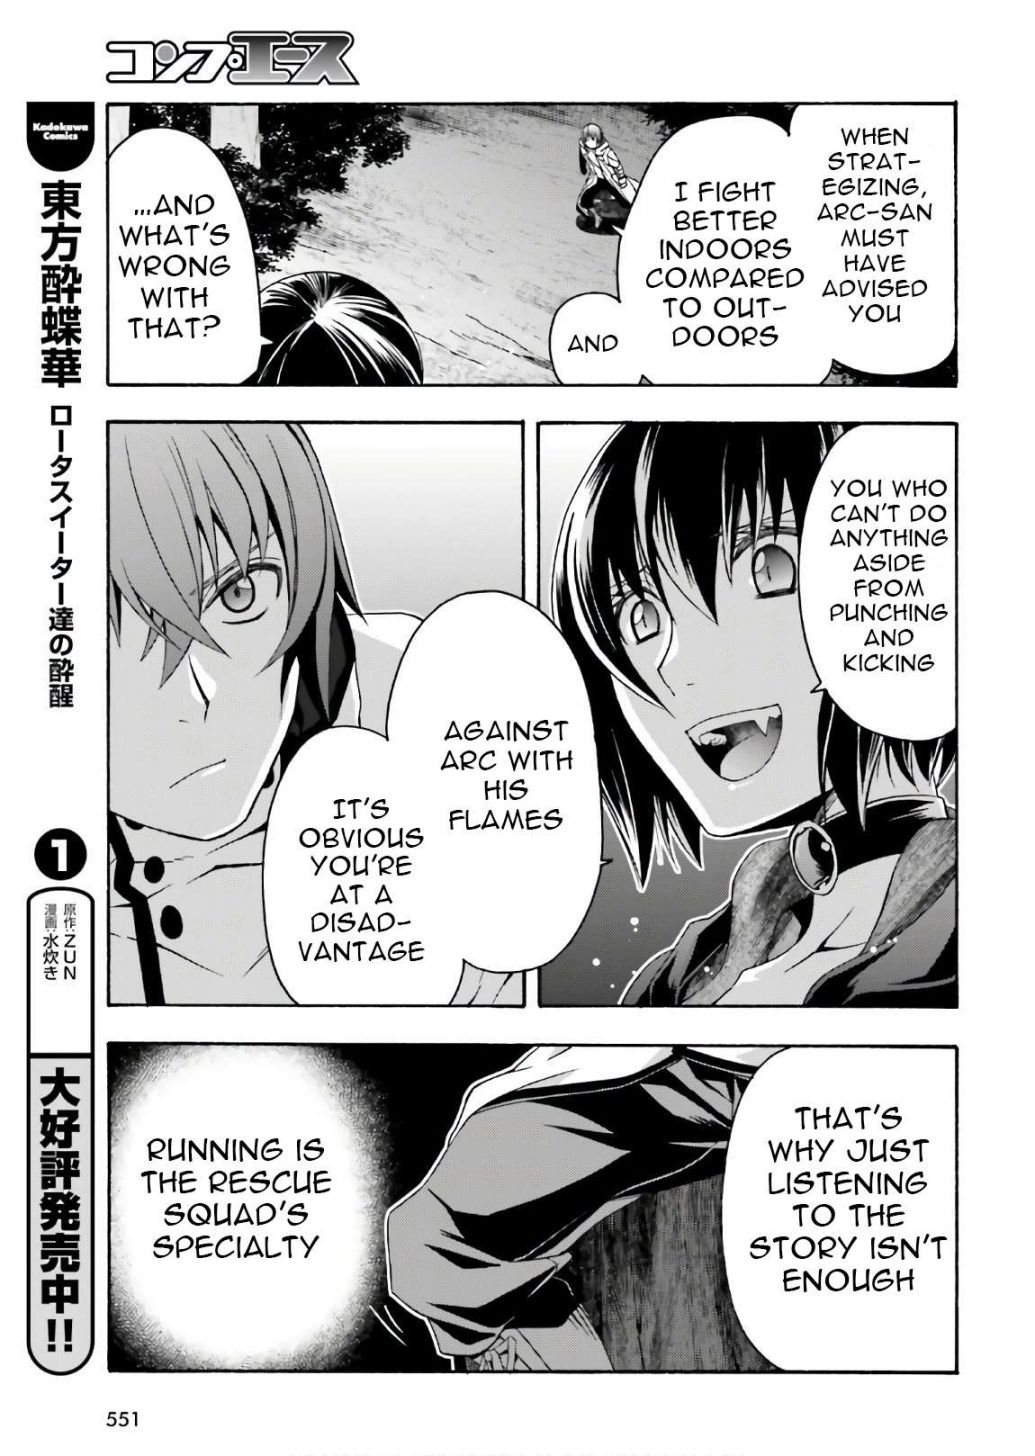 Read The Wrong Way To Use Healing Magic Manga English New Chapters Online Free Mangaclash Healing magicians cannot fight alone.' keare, who was bound by this common knowledge, was exploited again and again by others. wrong way to use healing magic manga